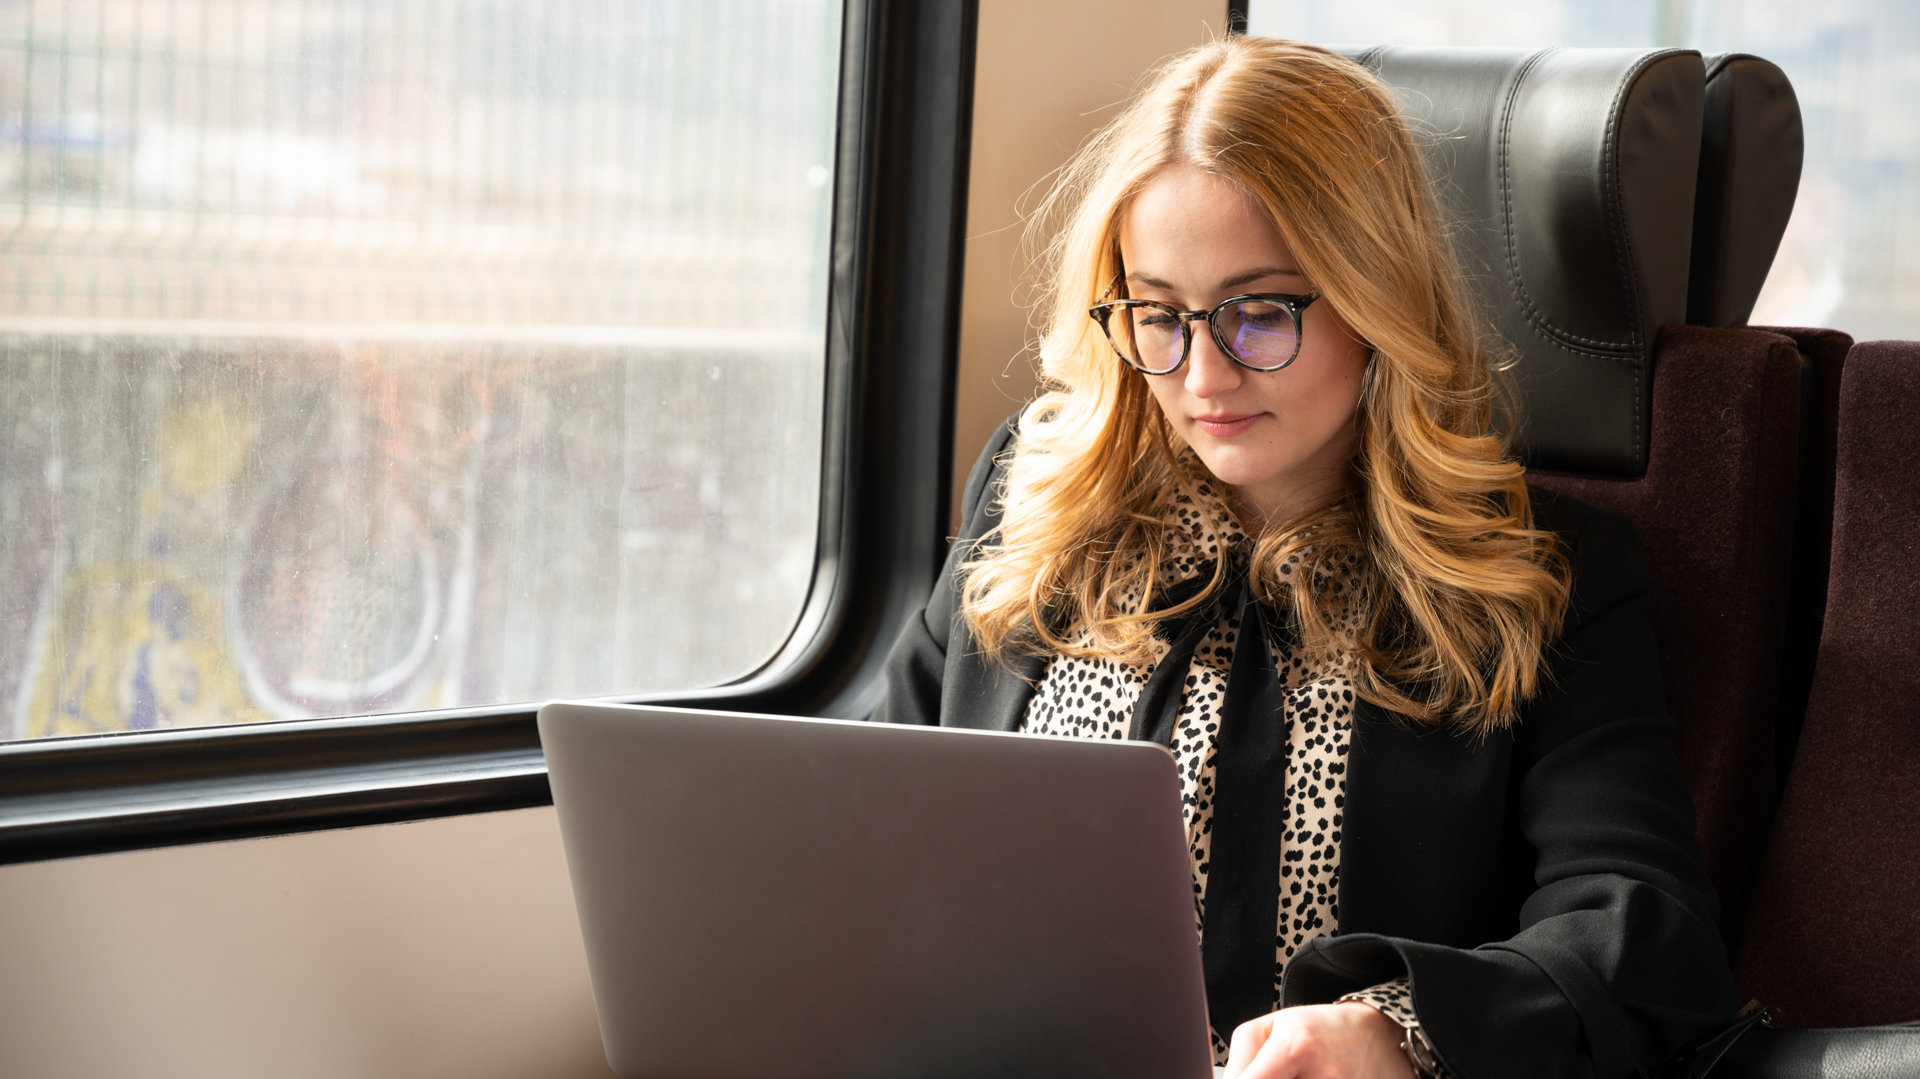 A girl with glasses working on her laptop on the train